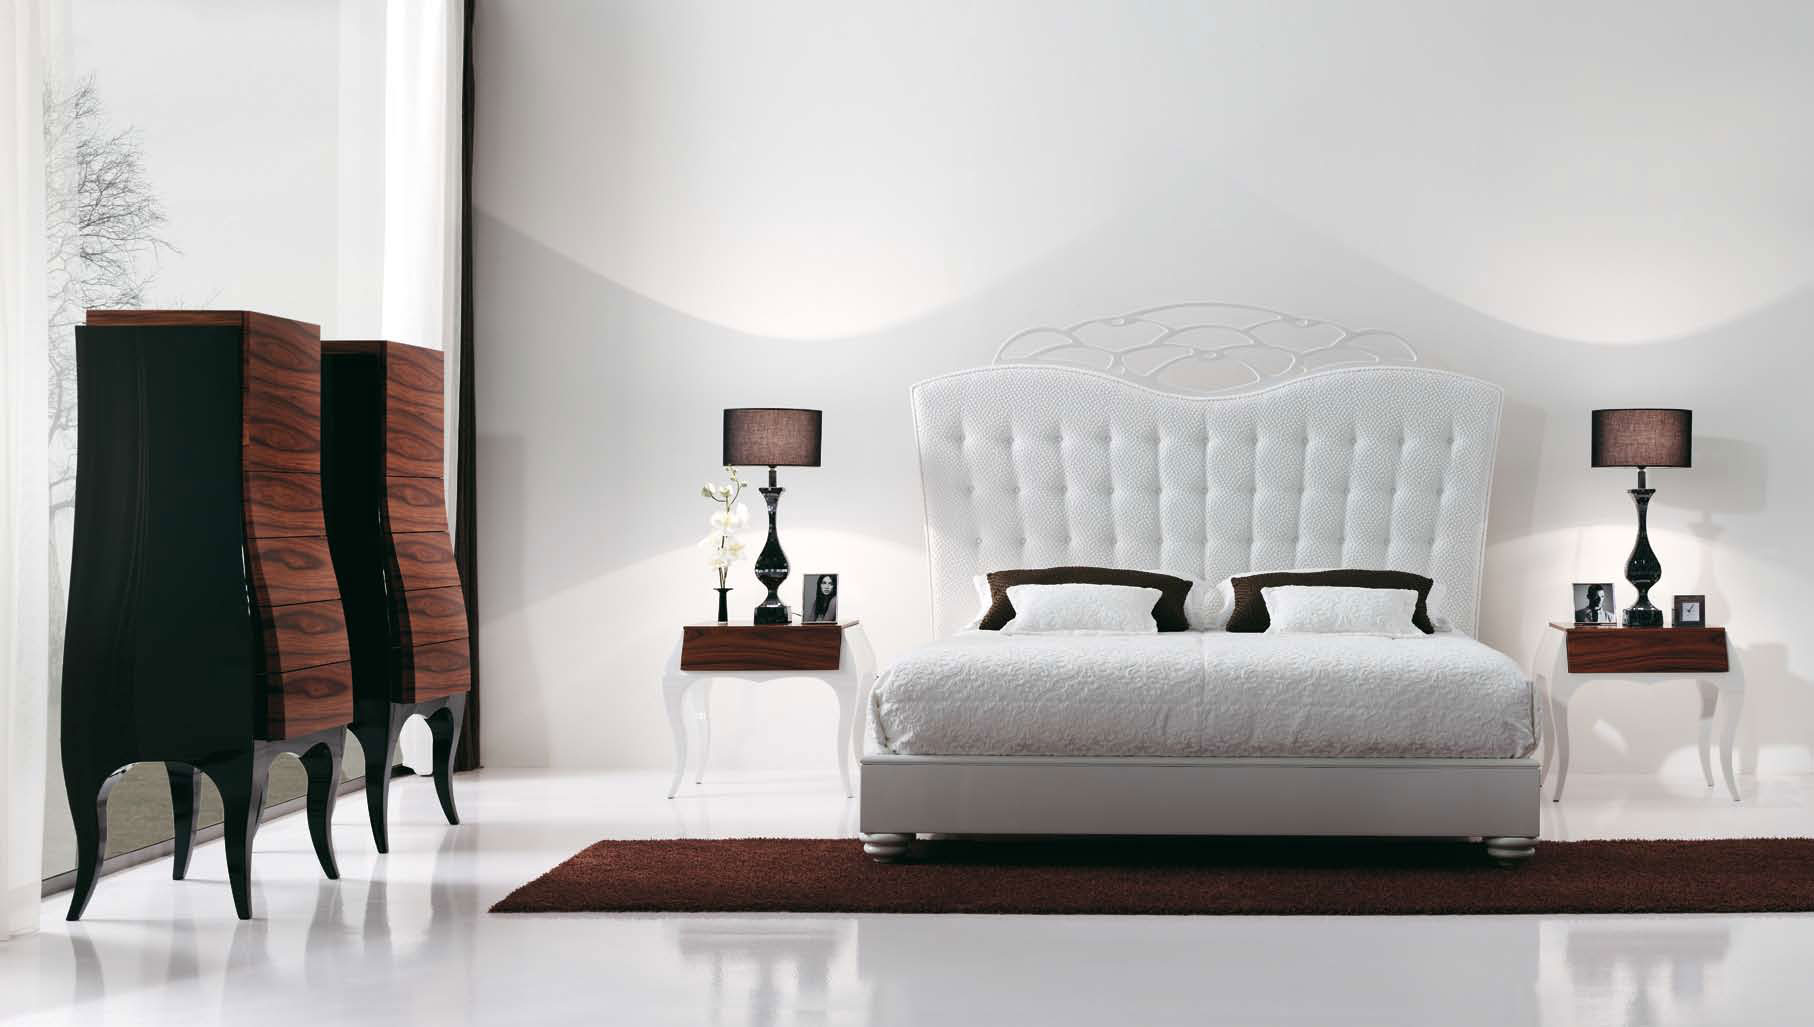 Luxury Bedroom with Beautiful White Bed by MobilFresno | DigsDigs